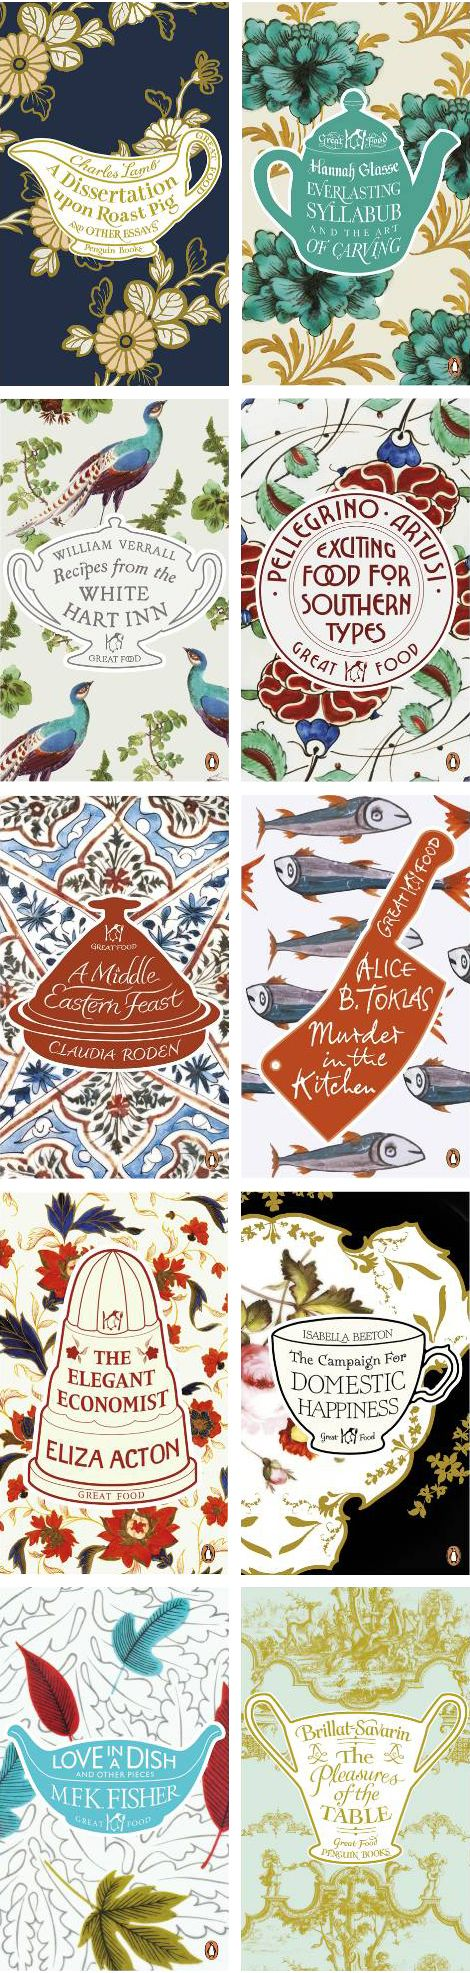 Penguin – Great Food, cover designs by Coralie Bickford-Smith http://www.apartmenttherapy.com/great-food-an-i-142985